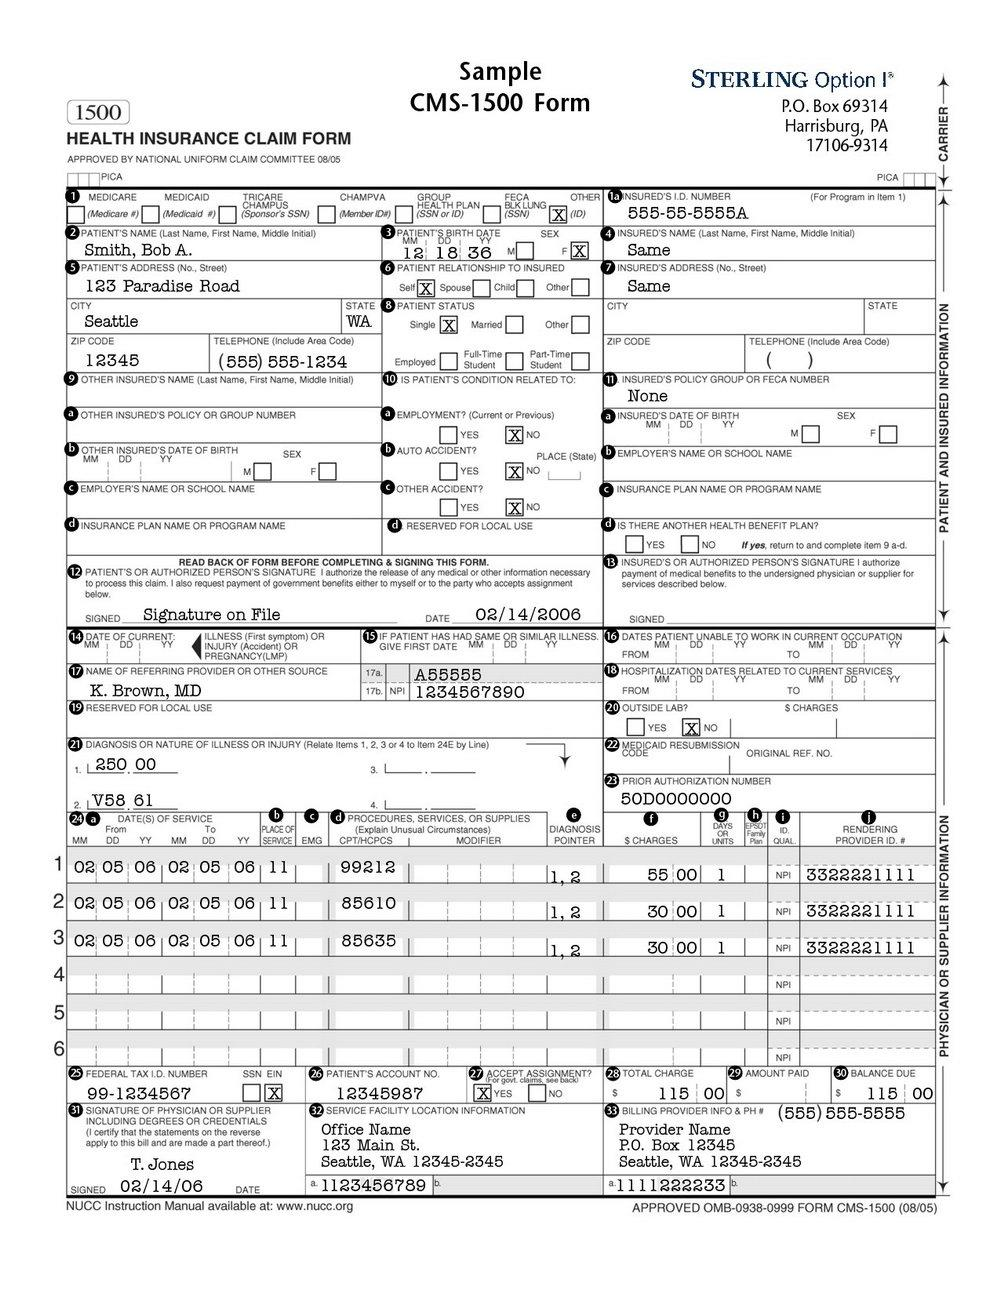 Cms 1500 Health Insurance Claim Form Manual